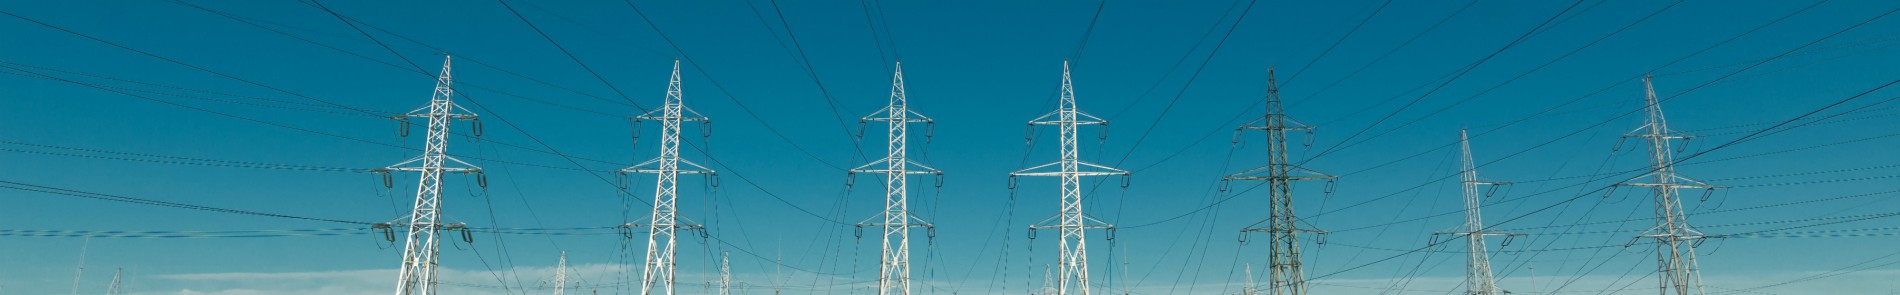 PMPA breadcrumb power lines image